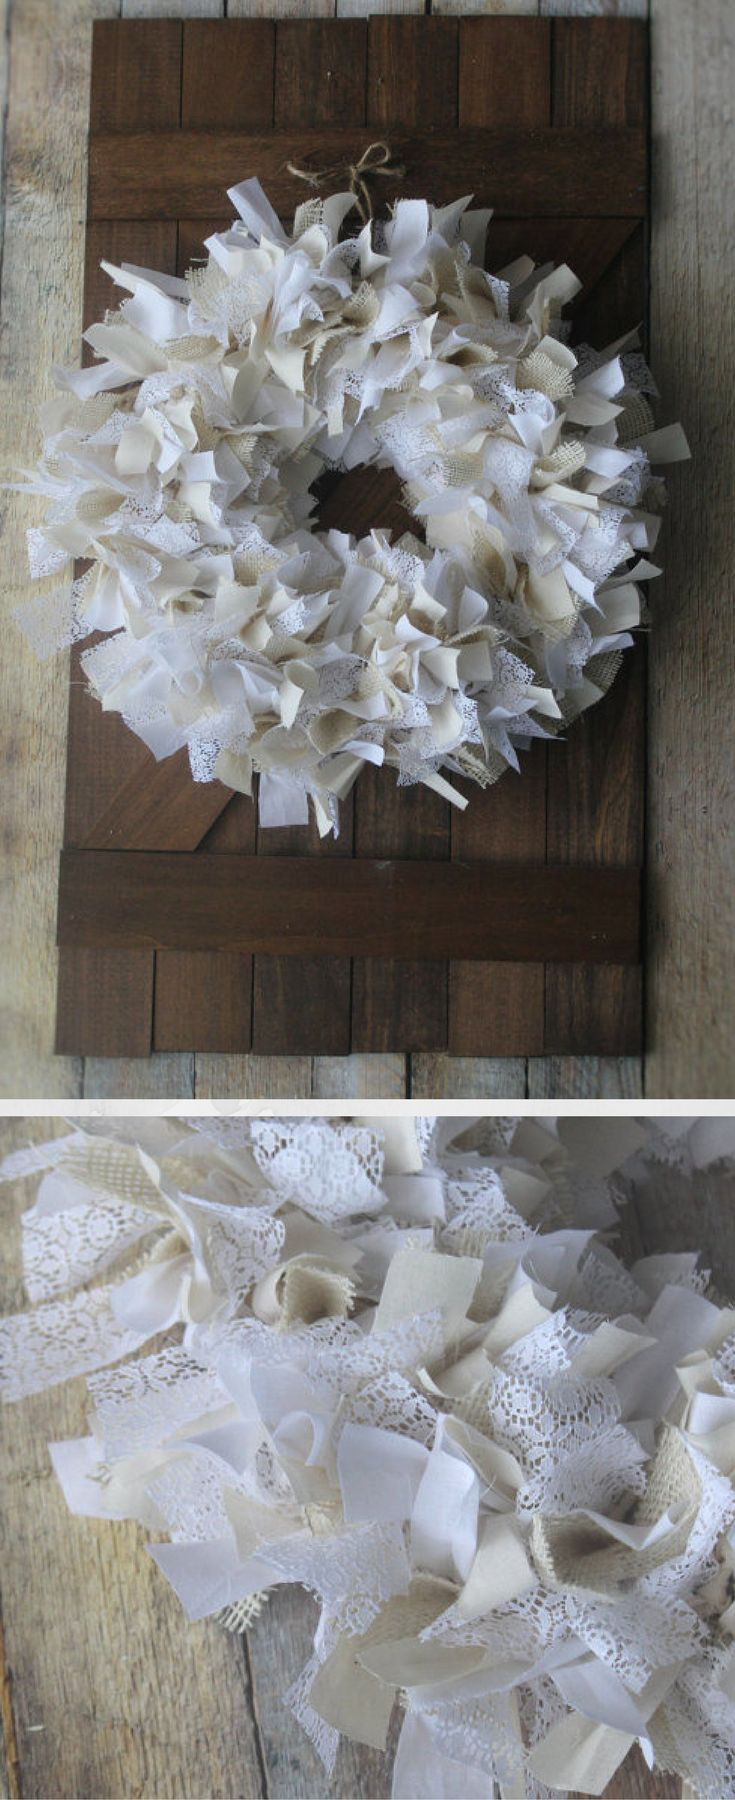 Fluffy Wreath with Tied Fabric